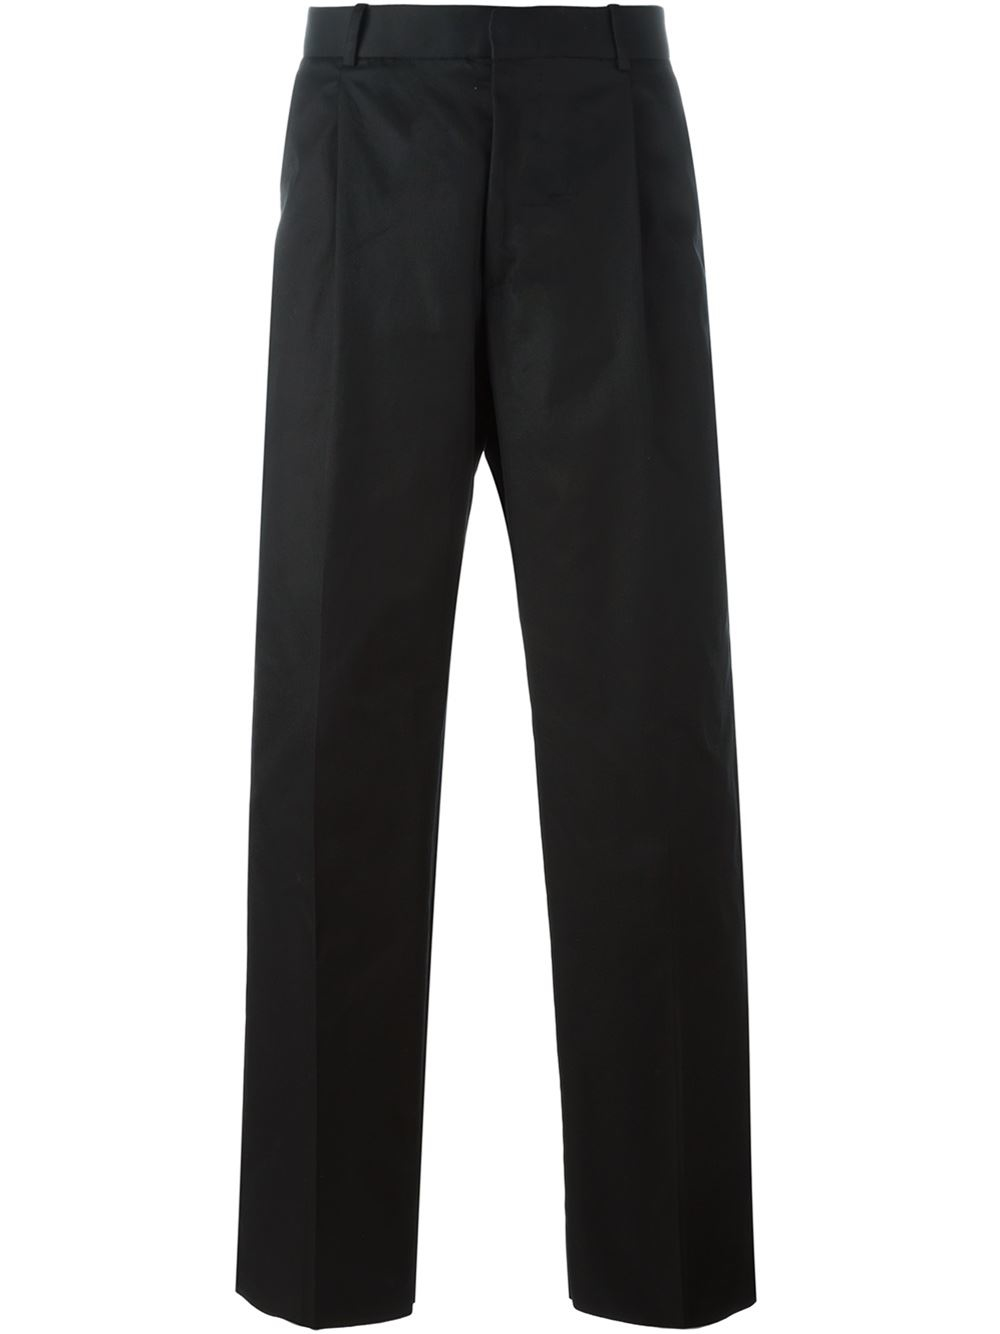 Alexander McQueen Cotton Wide Leg Trousers in Black for Men